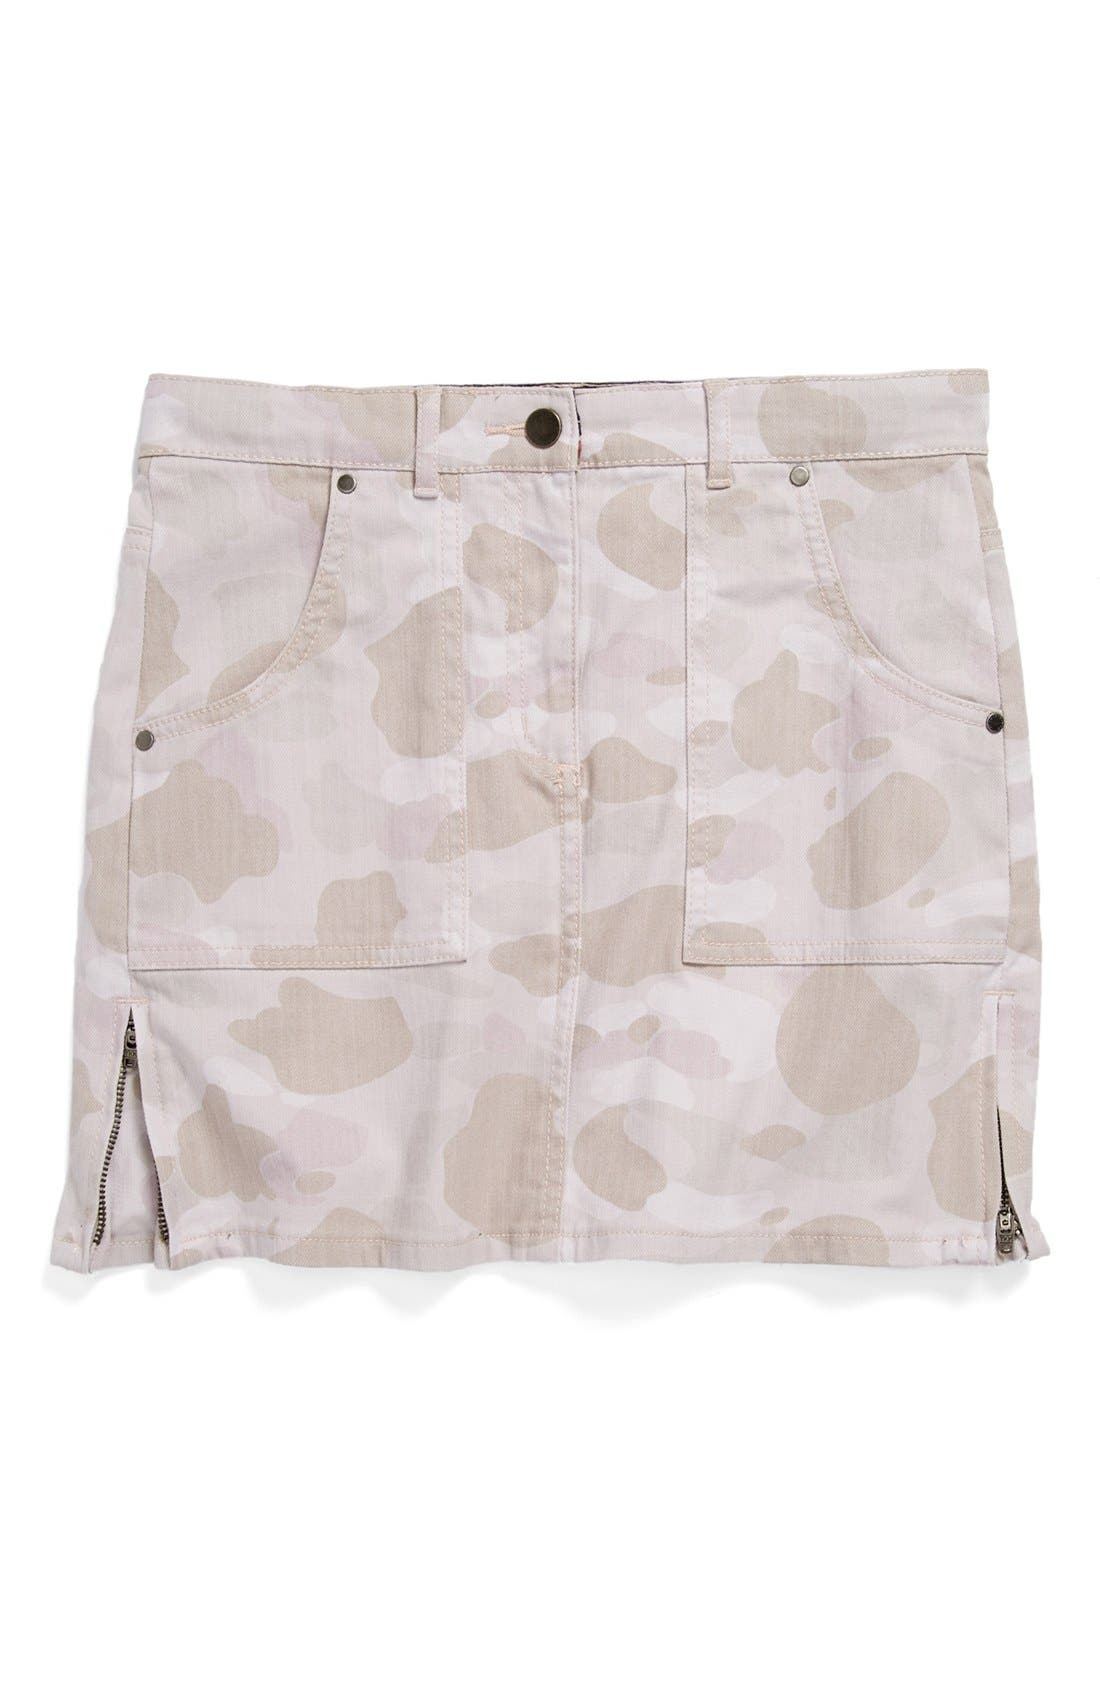 Main Image - Stella McCartney Kids 'Emmie' Camo Denim Skirt (Toddler Girls, Little Girls & Big Girls)